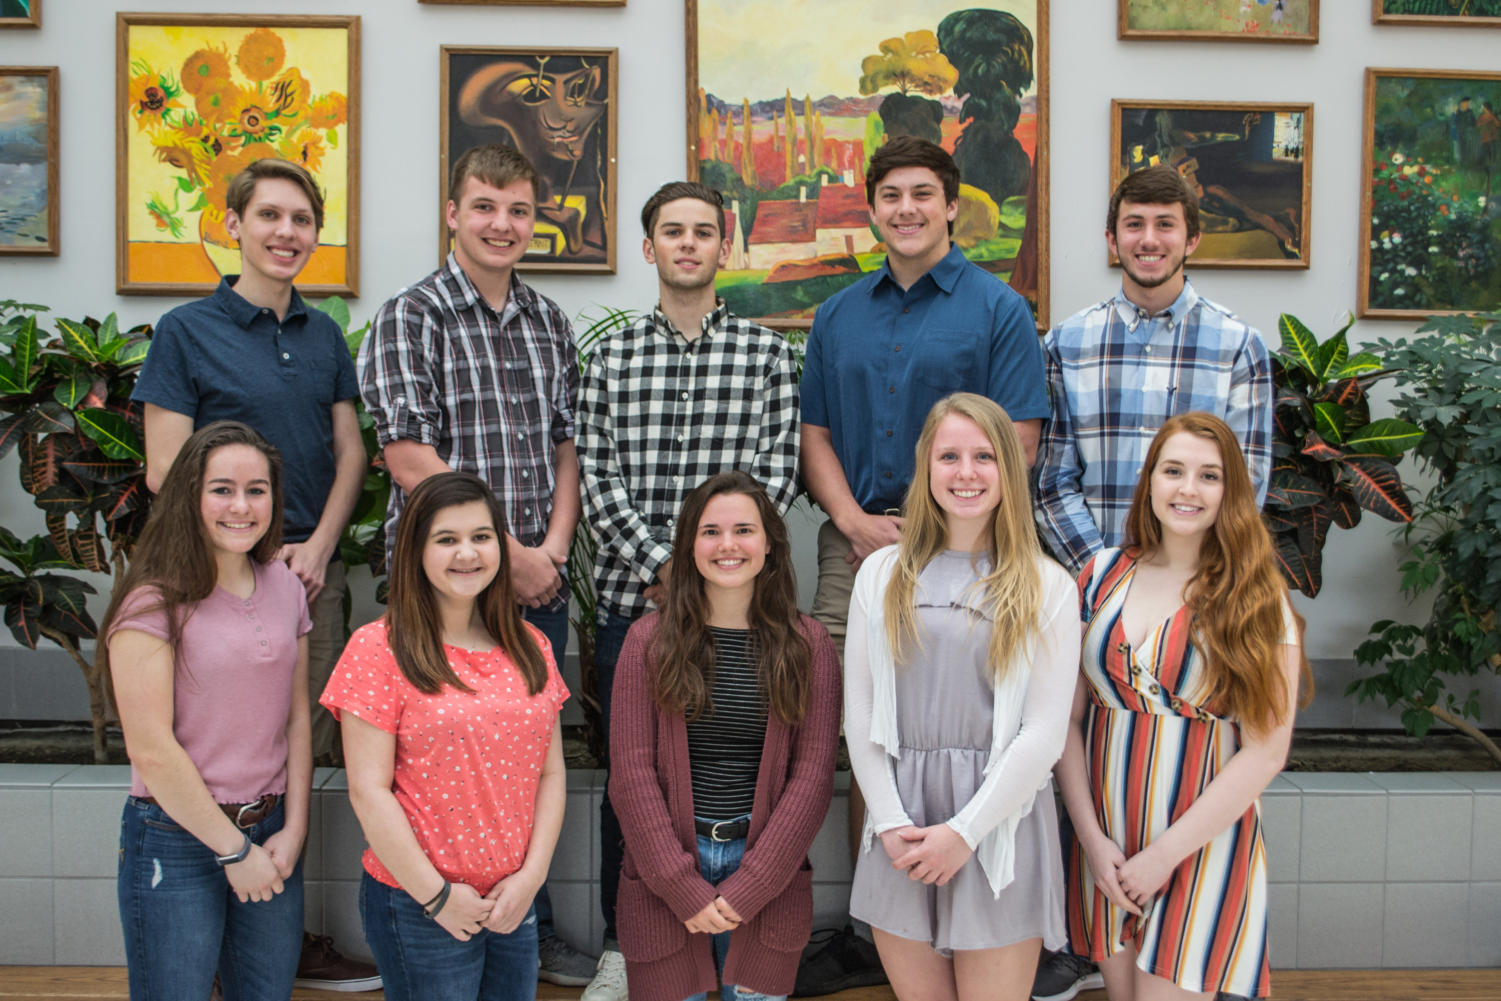 The 2019 prom court are: Kaley Berger, Maegan Parker, Claire Campbell, Kayla Freyermuth, Taylor Thomas, Noah Clever, Logan McFadden, Brennon Songer, Nick Renick, & Nick Halmi.